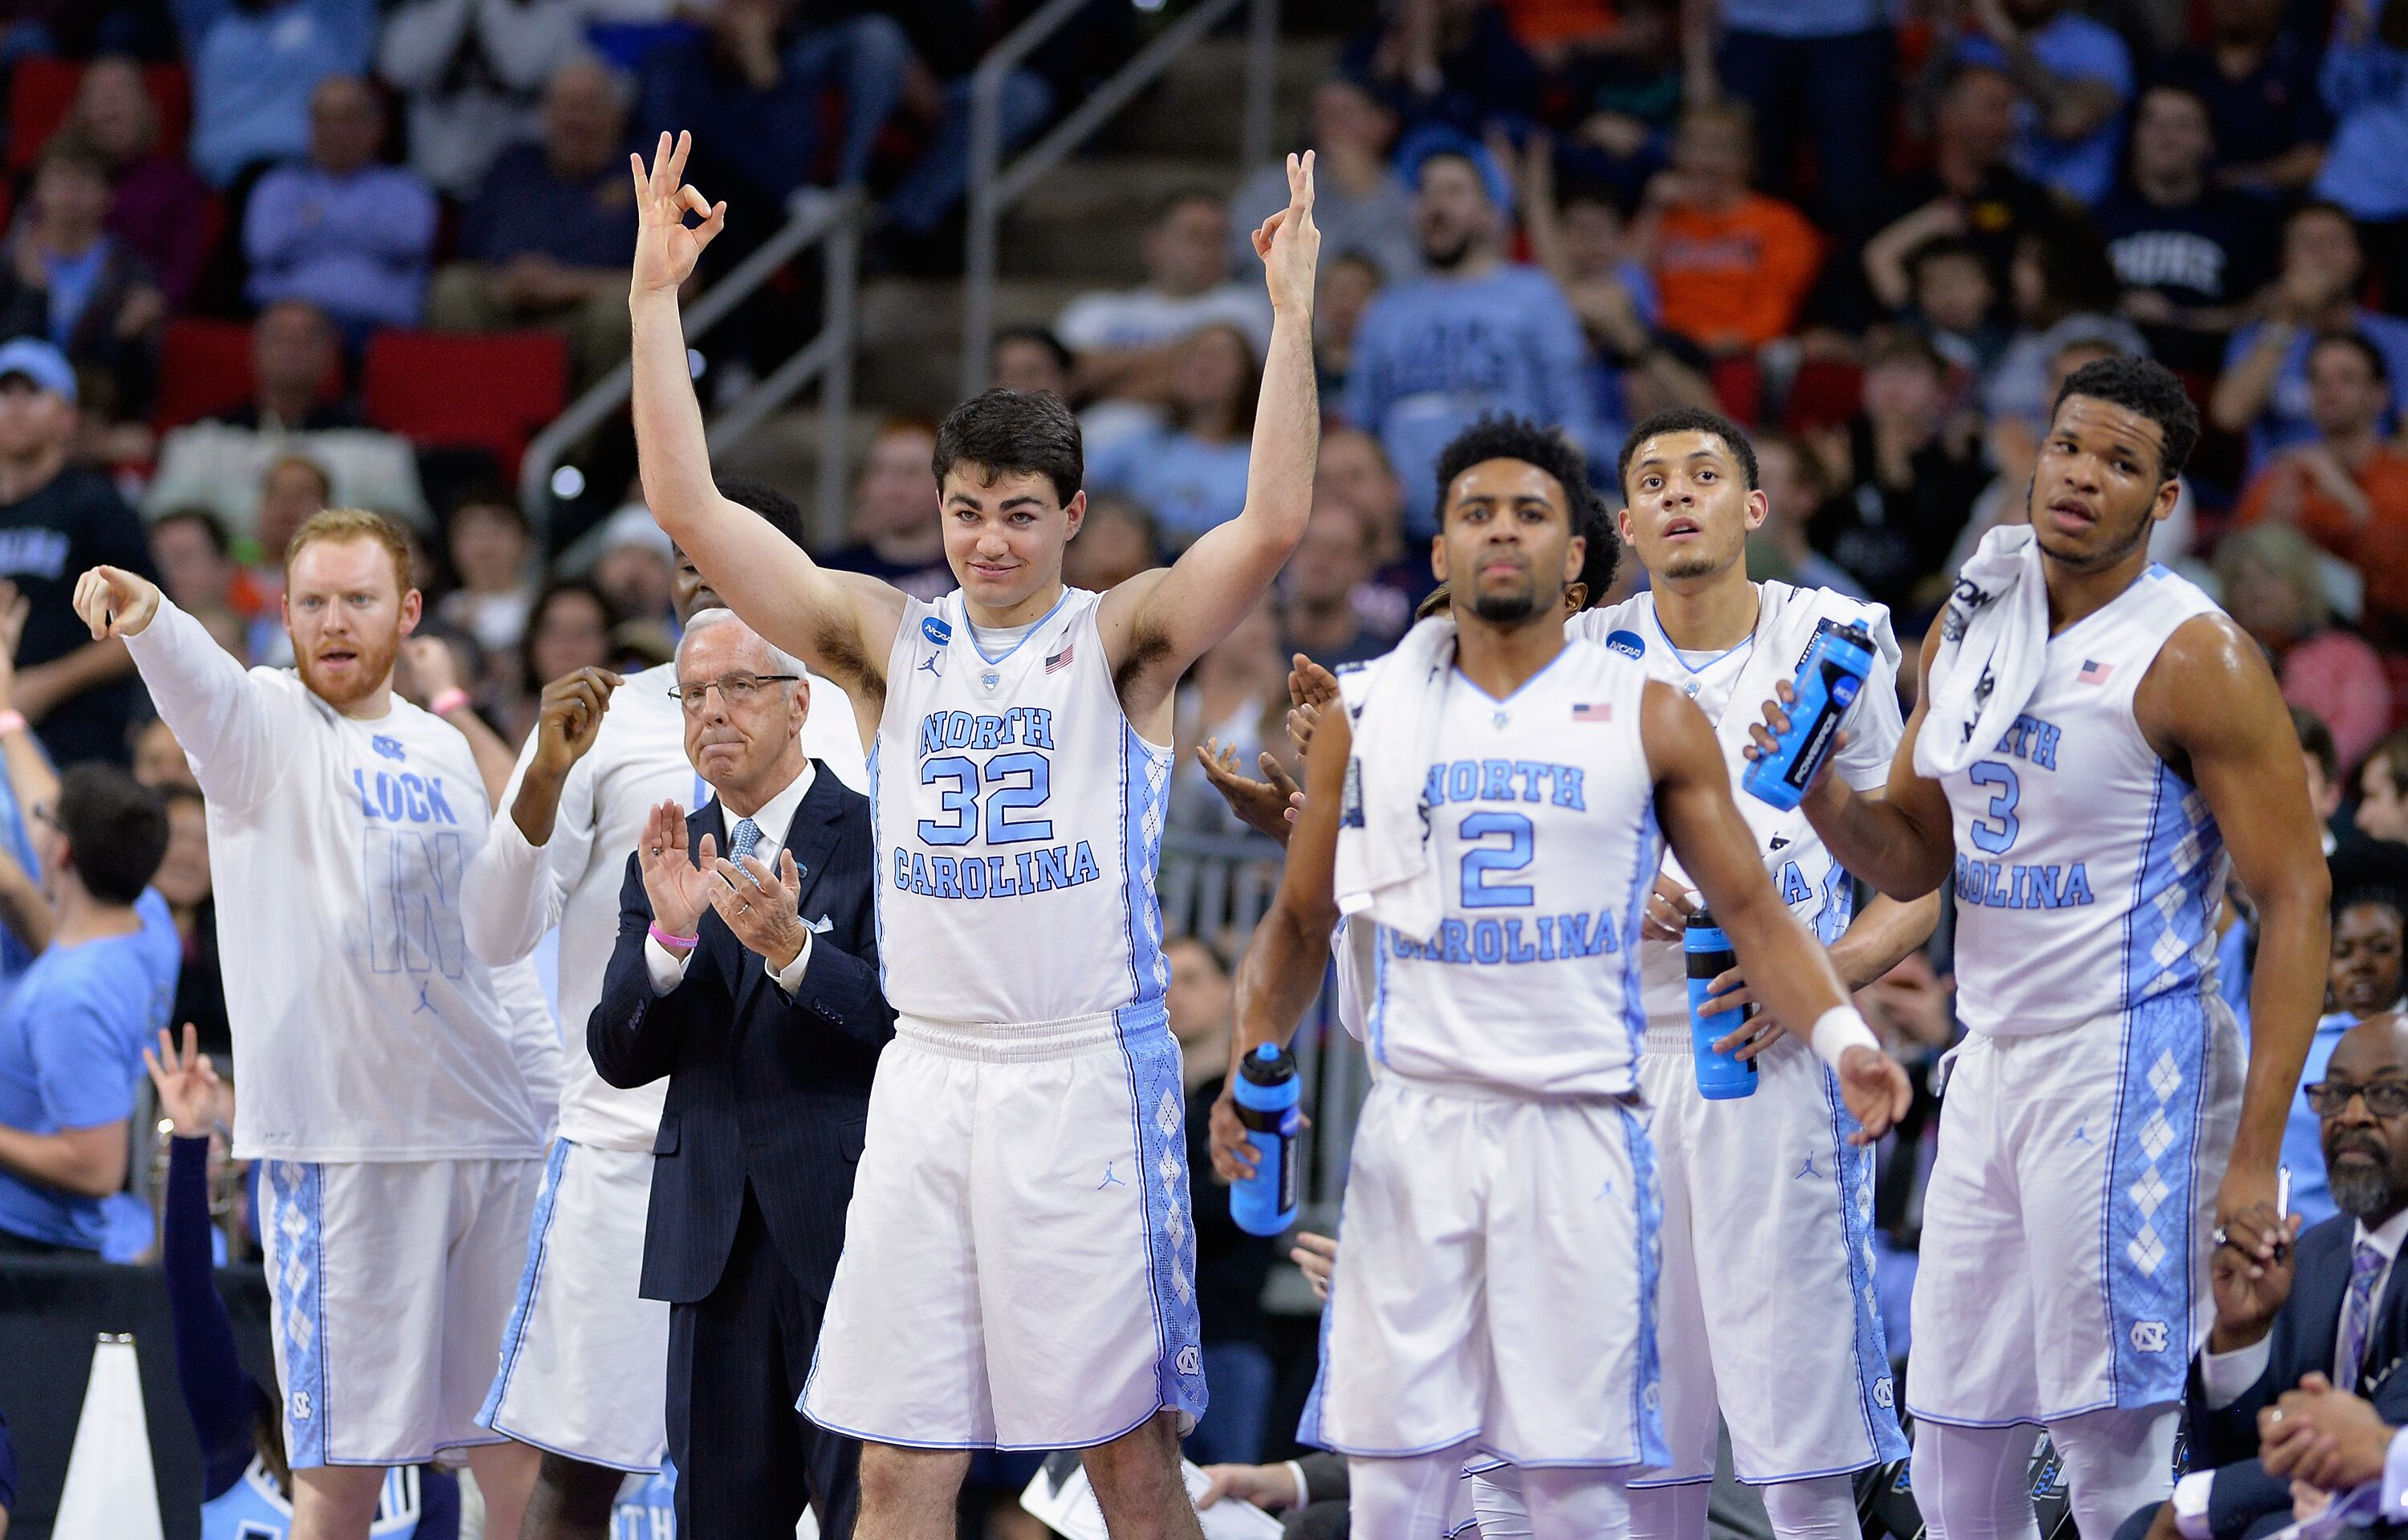 ACC Basketball: Top Players From Each Team This Century, Part 2